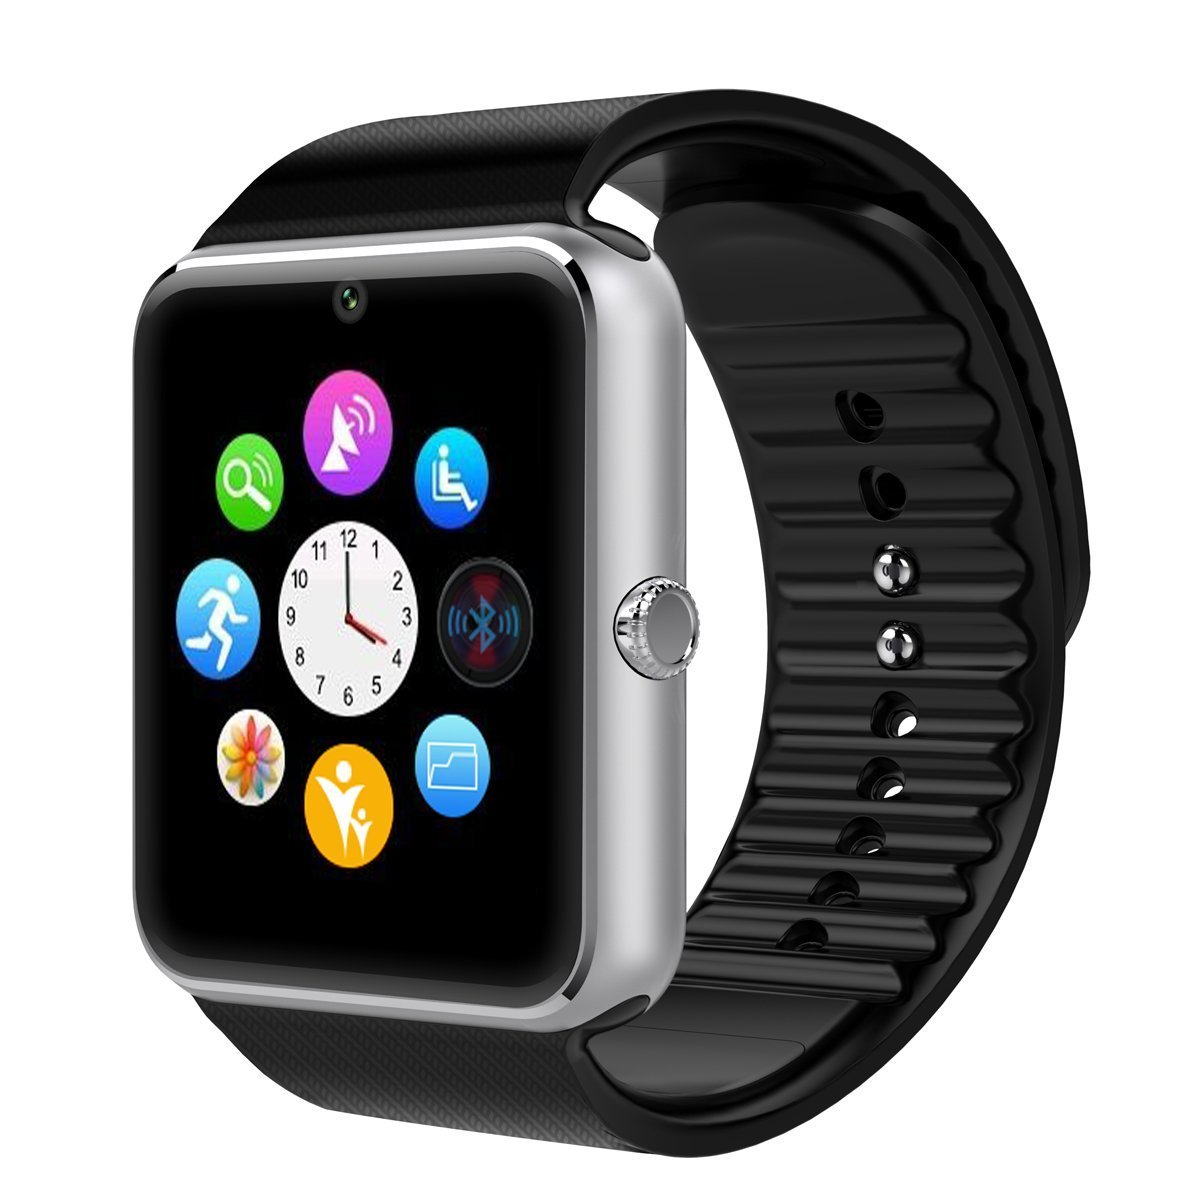 CNPGD Bluetooth Smart Watch(Partial Compatible for IOS IPHONE)+(Full Compatible for Android smartphone) Samsung, LG, Galaxy Note, Nexus, Sony+Unlocked Watch ...